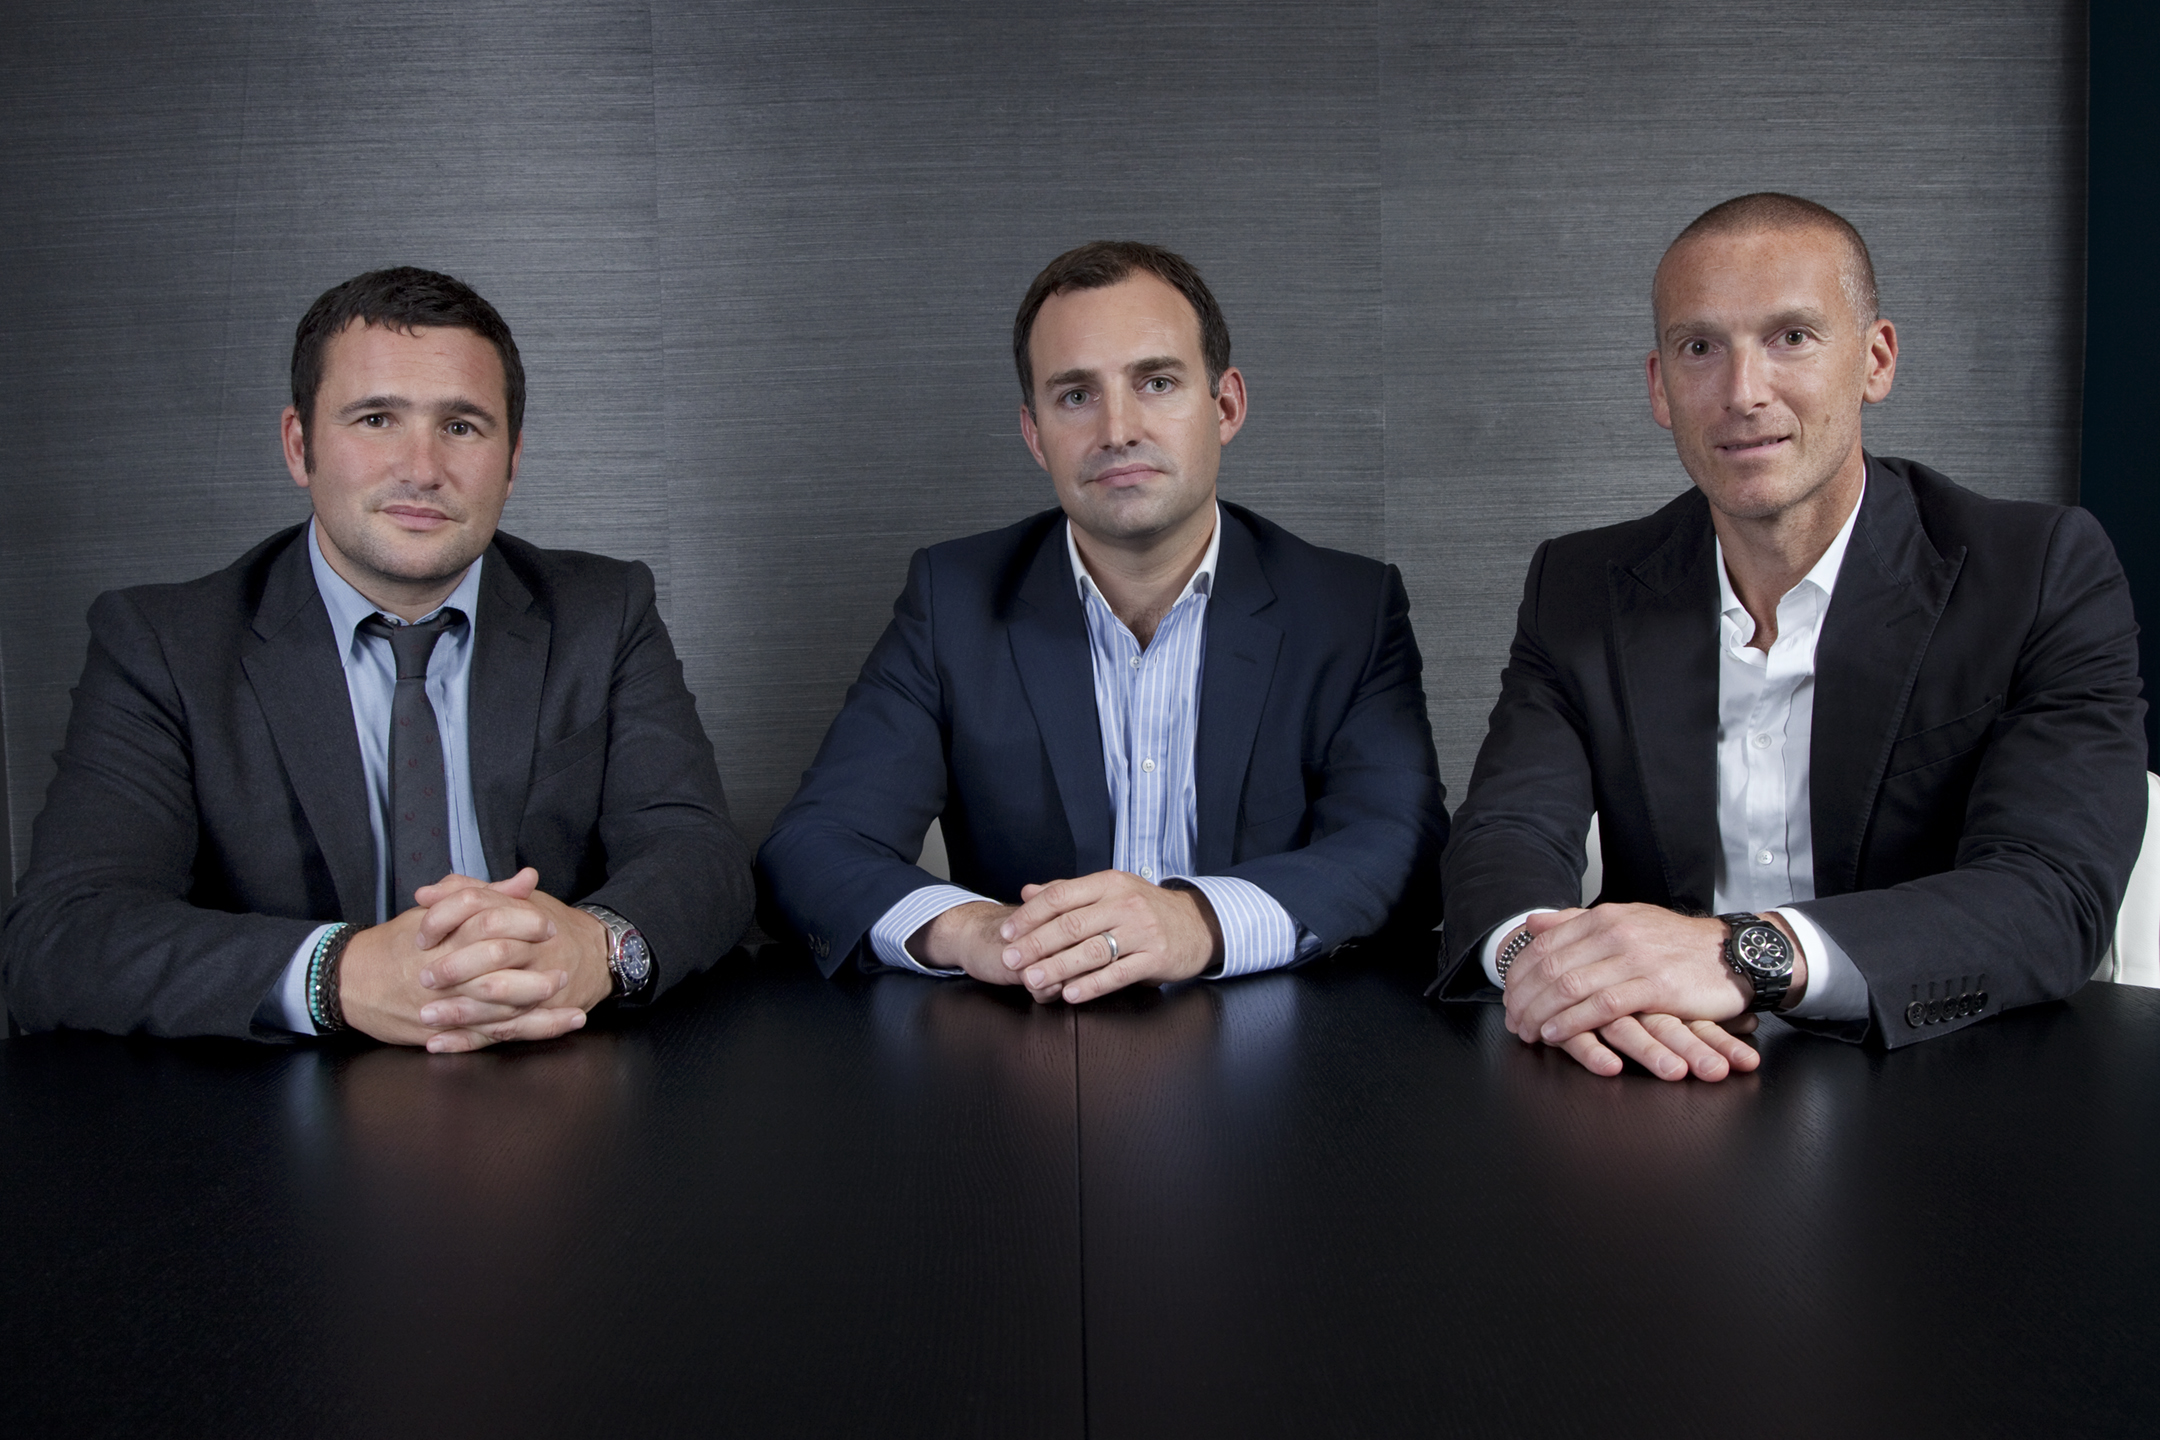 Formal group photograph of three men sitting at a desk